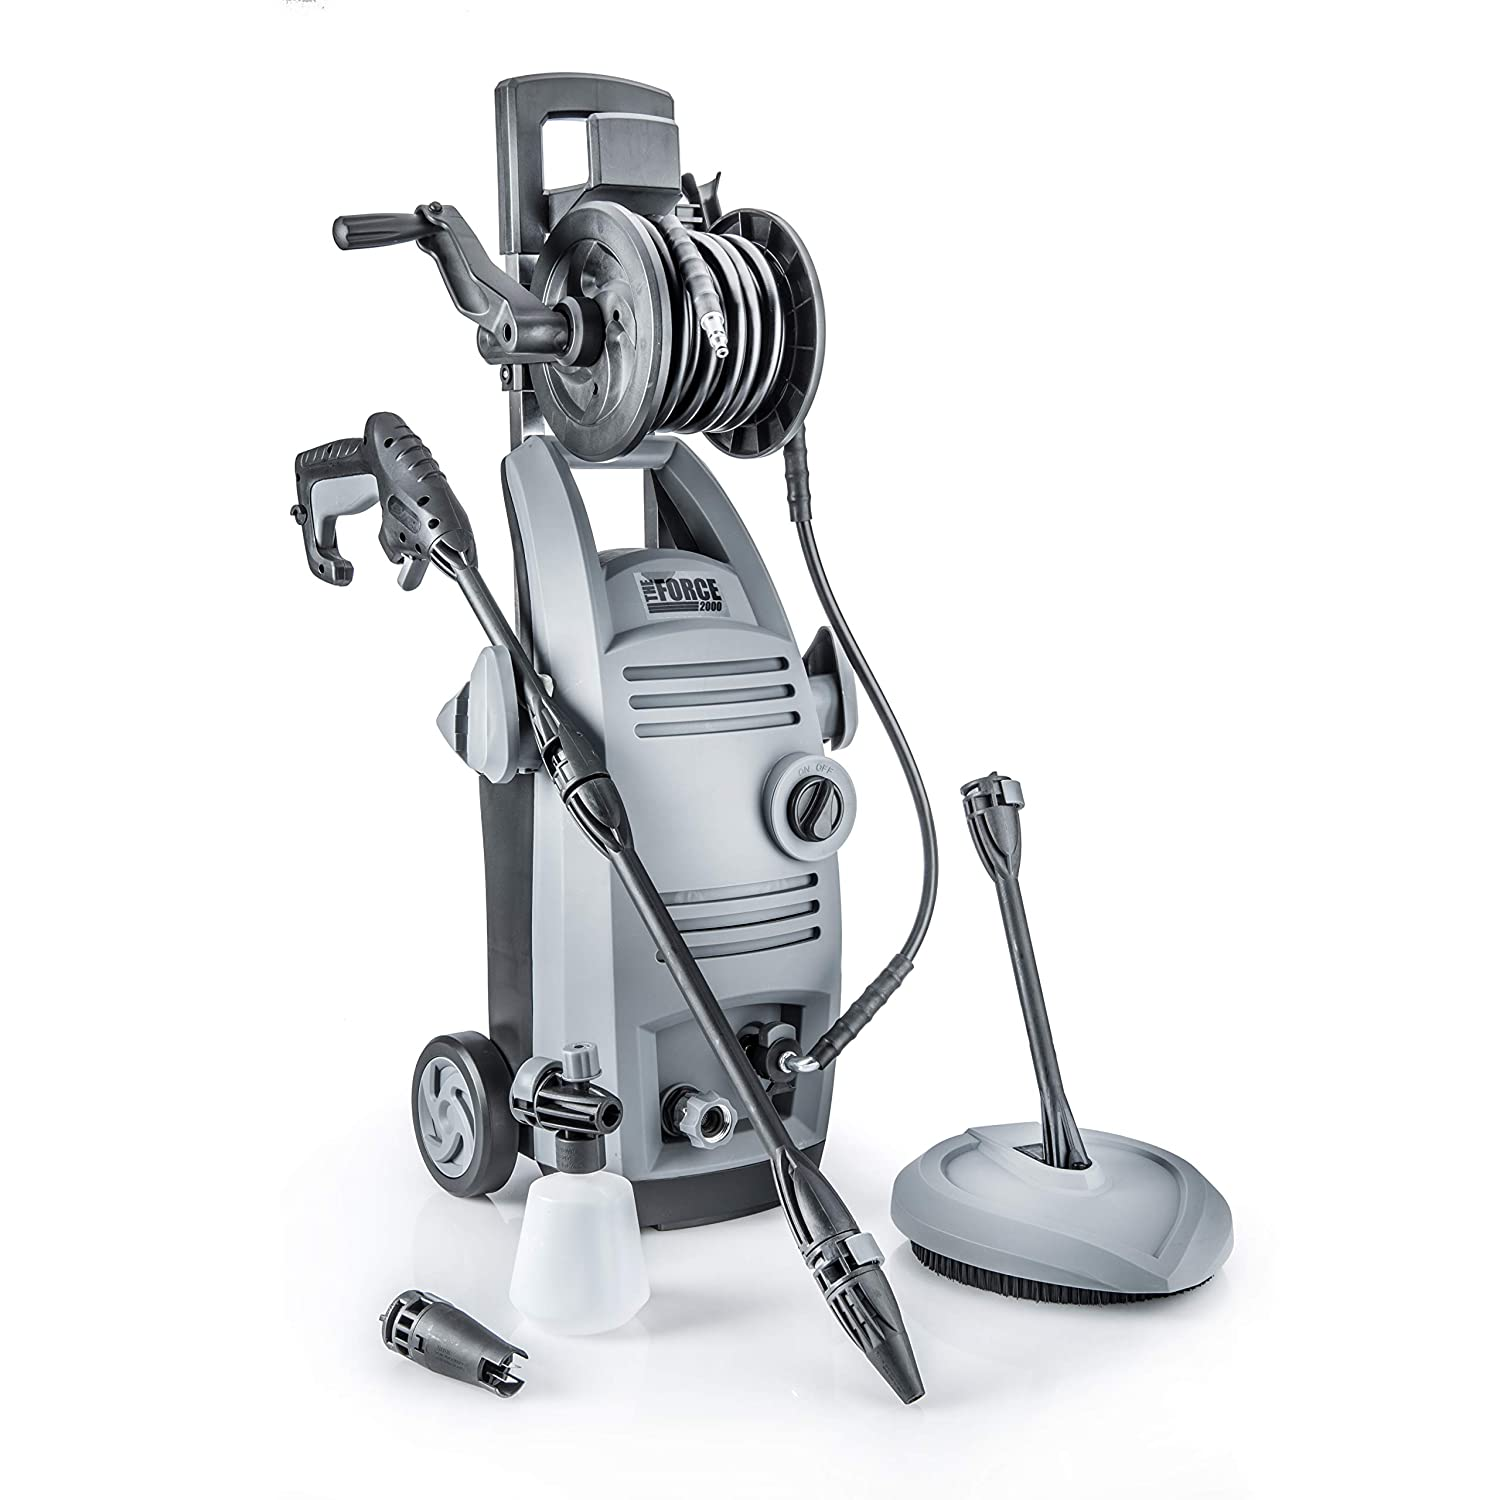 Top 10 Best Pressure Washers Reviews in 2020 9